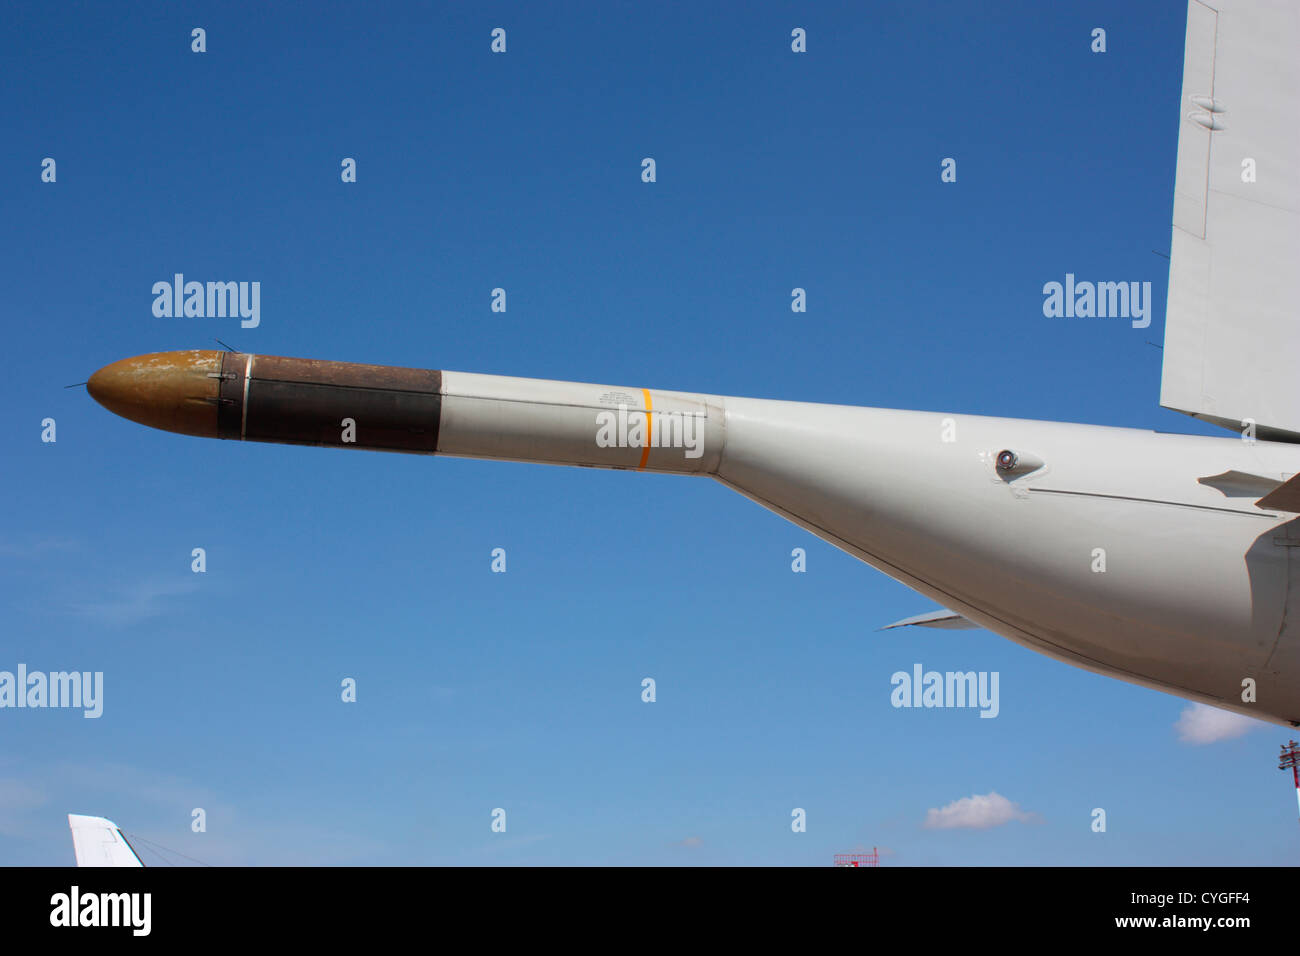 The magnetic anomaly detector boom, which is used to detect submarines, on the tail of a US Navy P-3 Orion - Stock Image